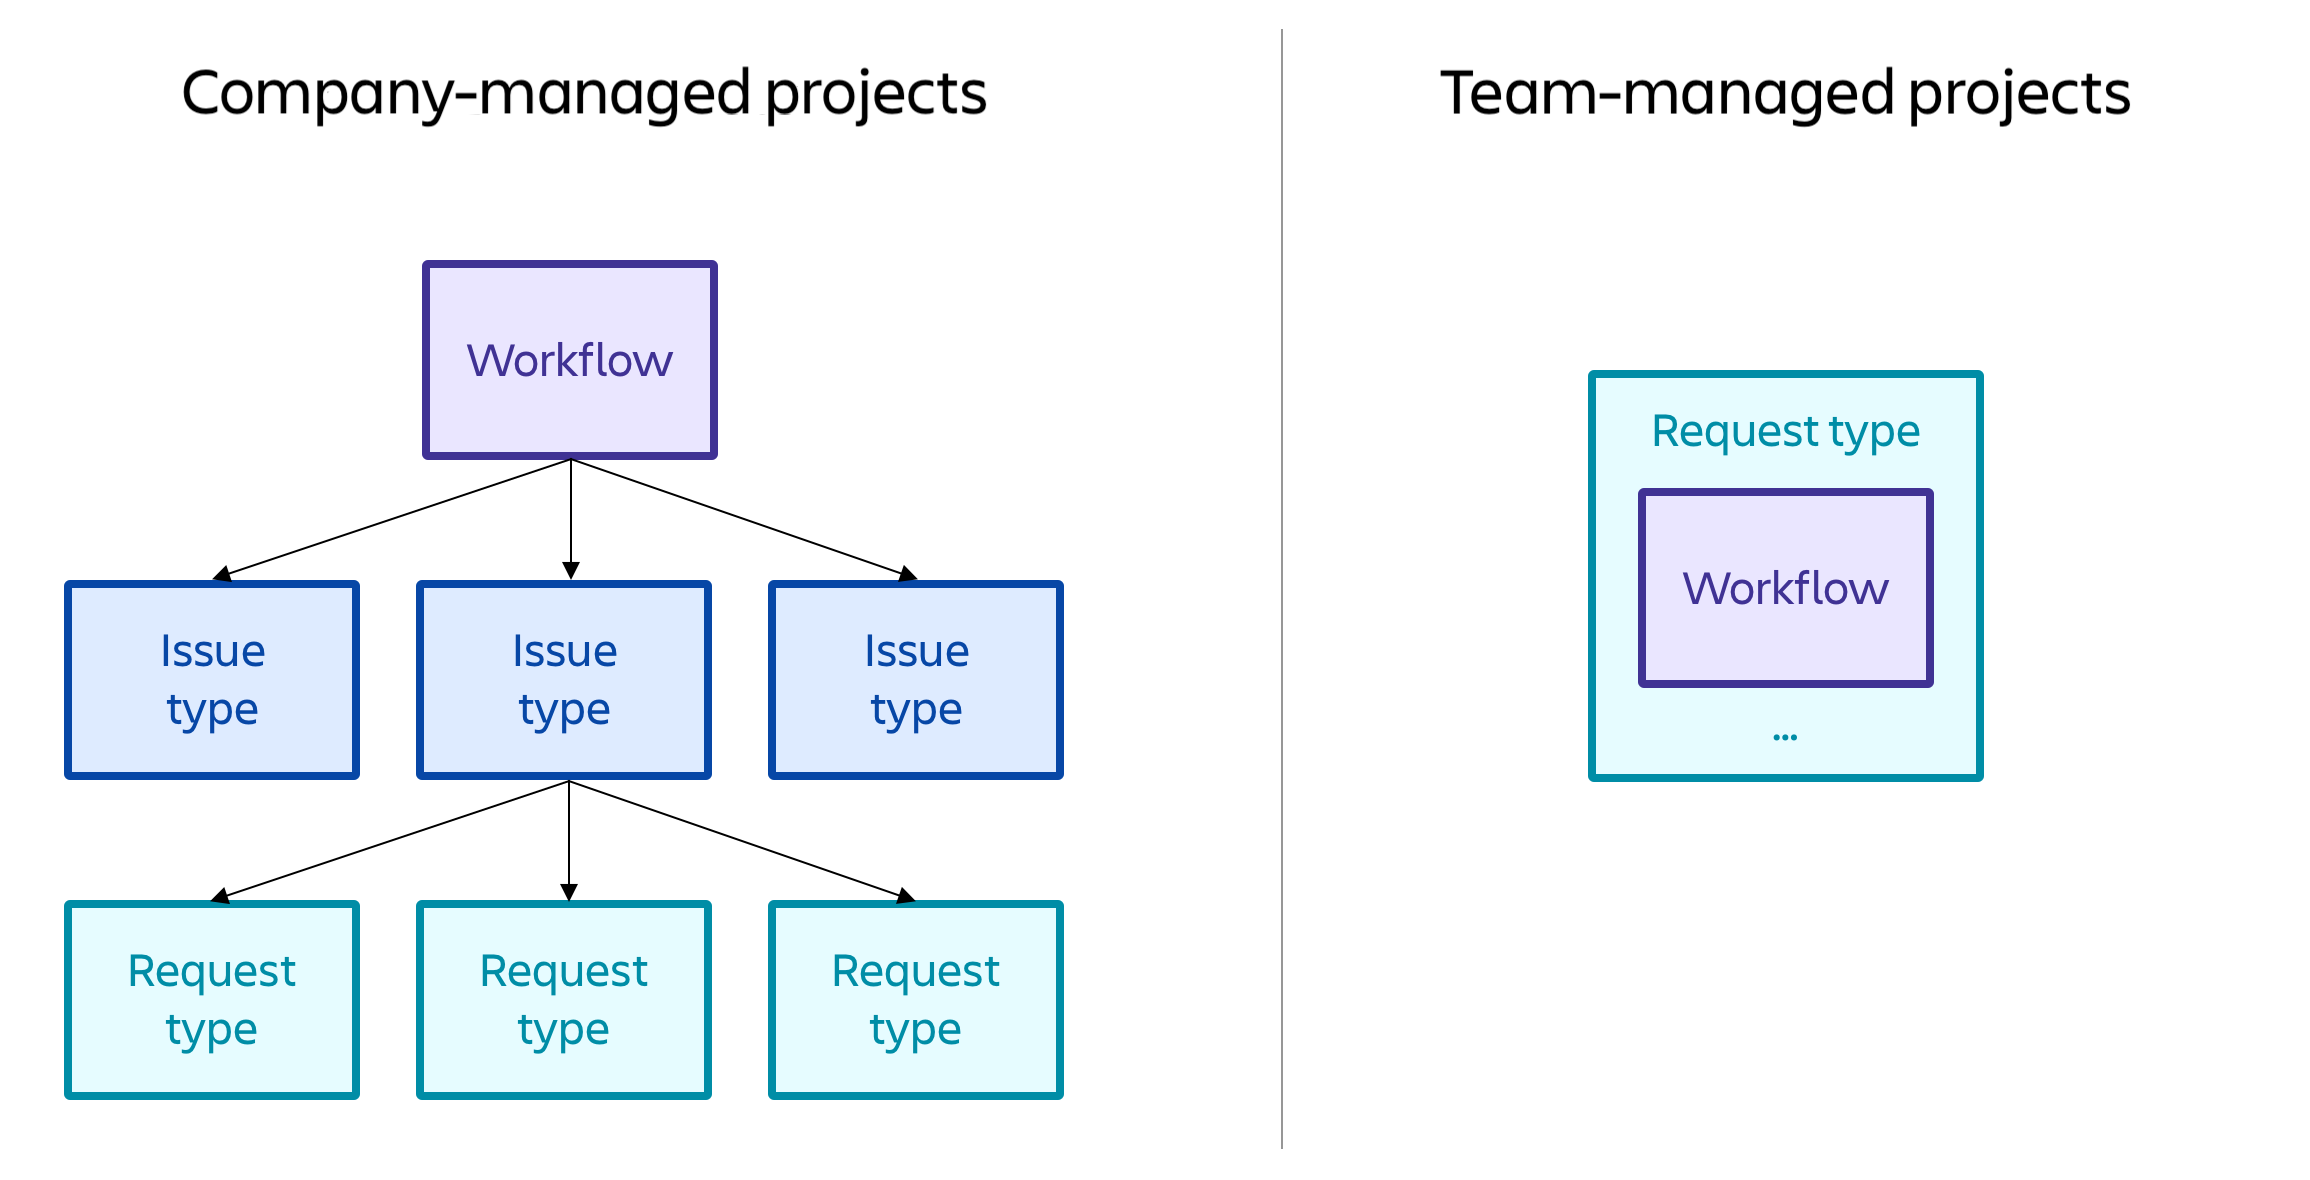 Company-managed workflows can be shared across request types, and team-managed workflows are request type independent